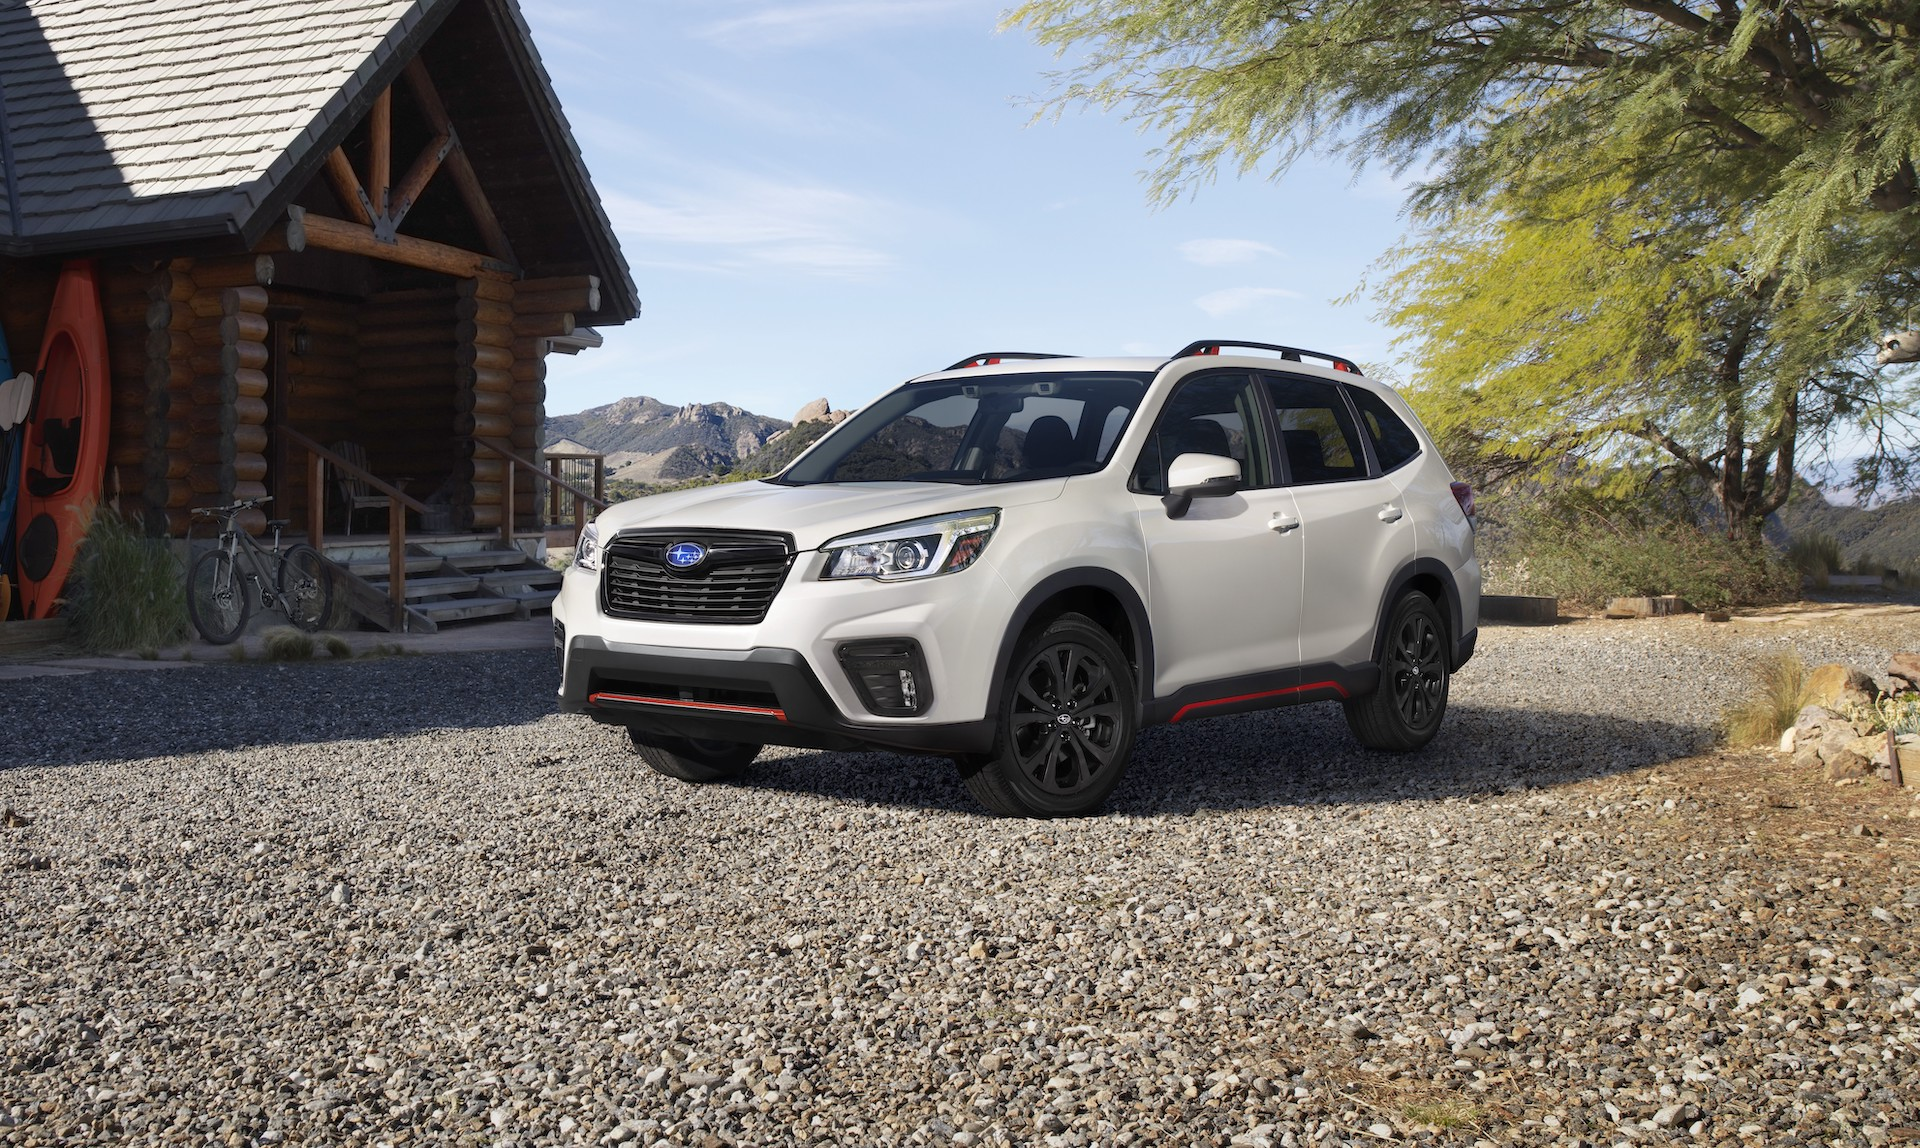 new and used subaru forester prices photos reviews specs the car connection new and used subaru forester prices